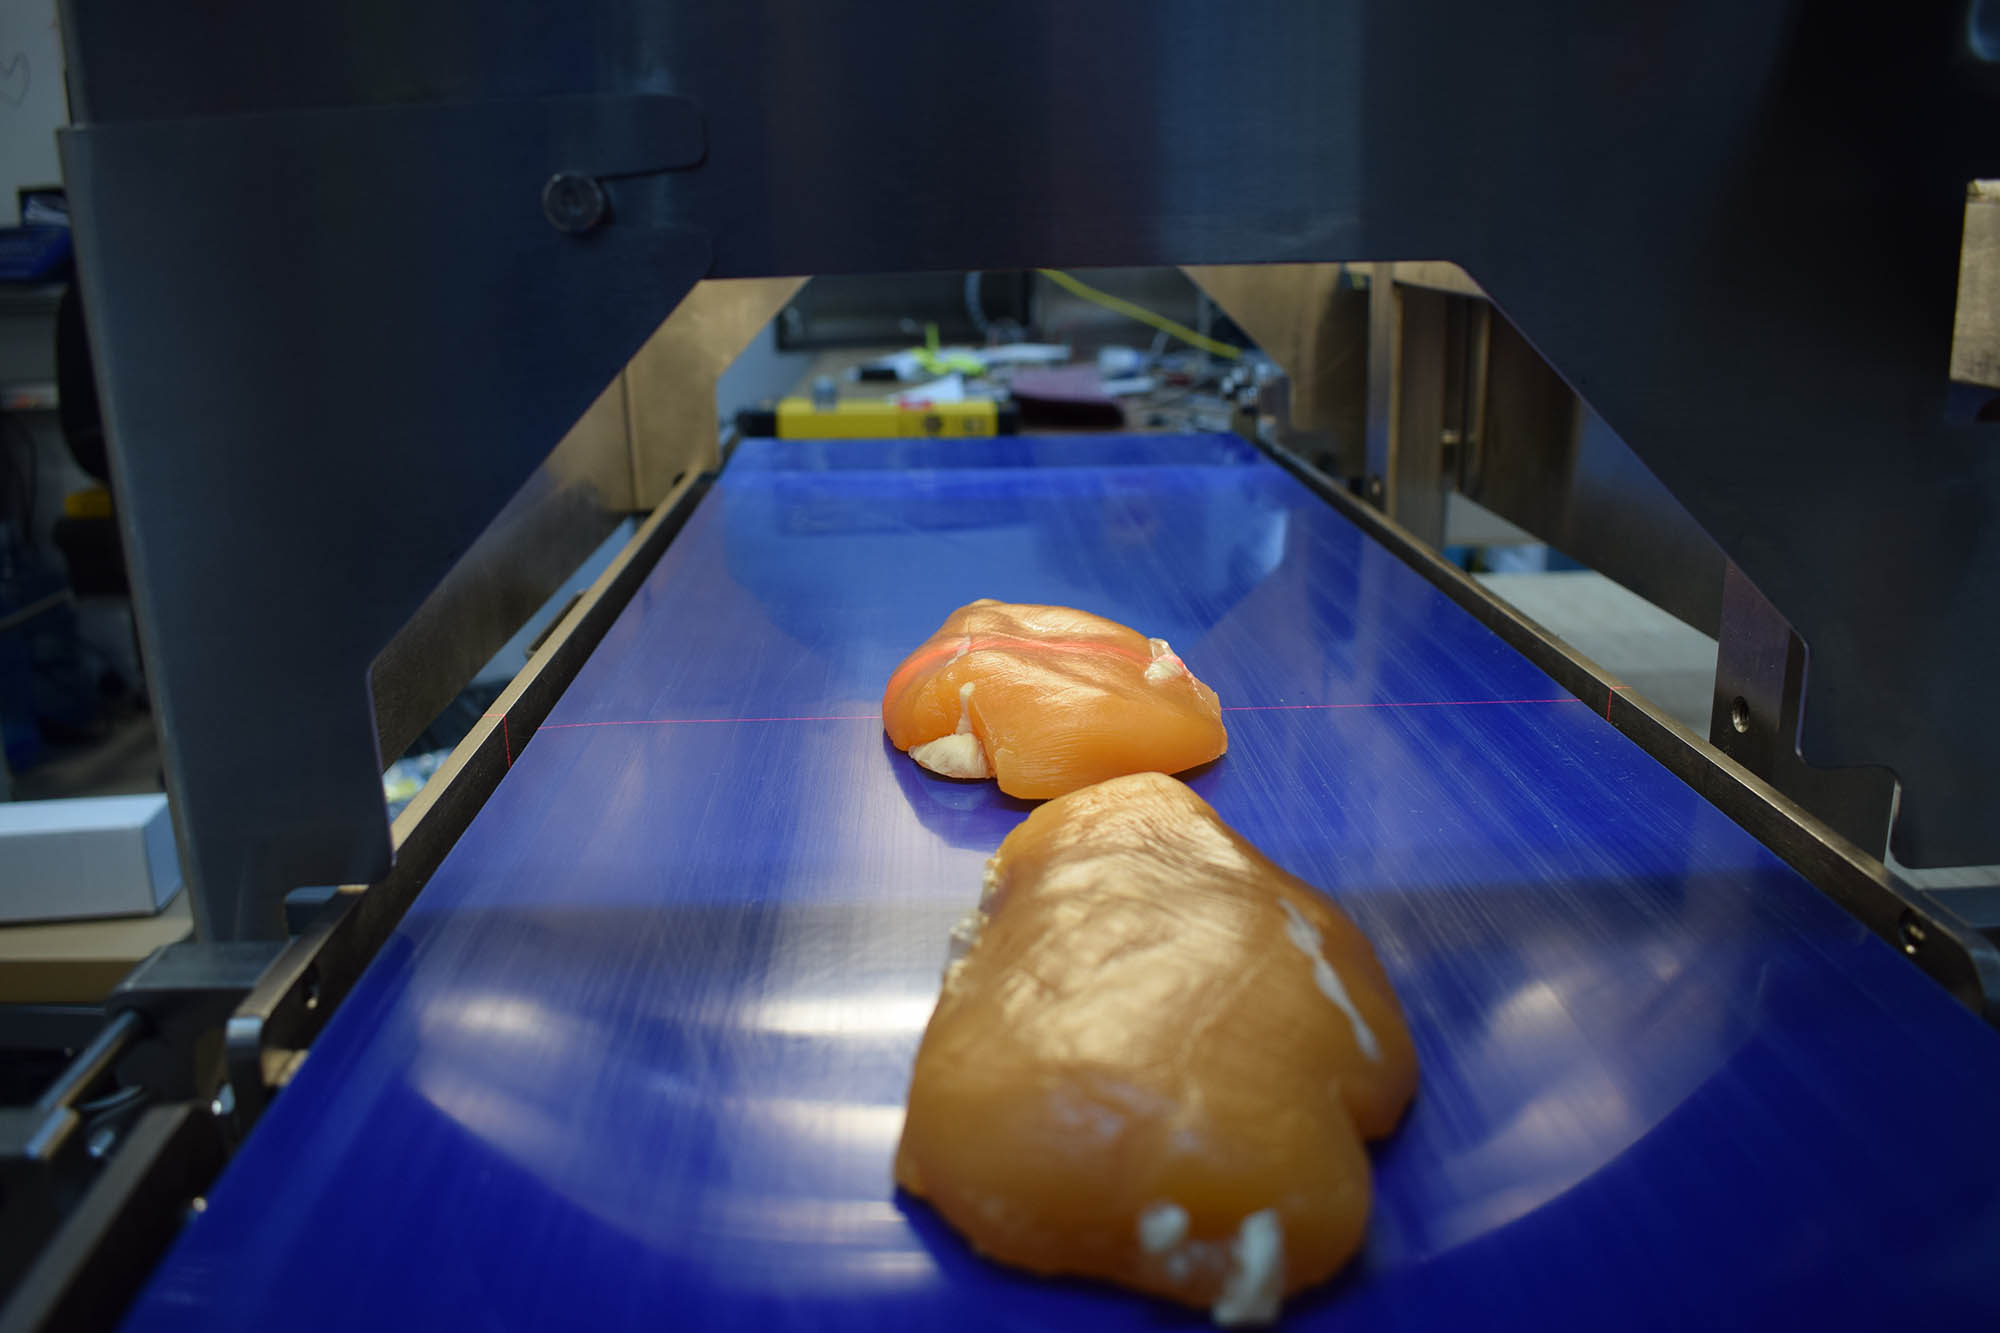 Poultry Inspection with Sightline Benchtop QA Measurement  System